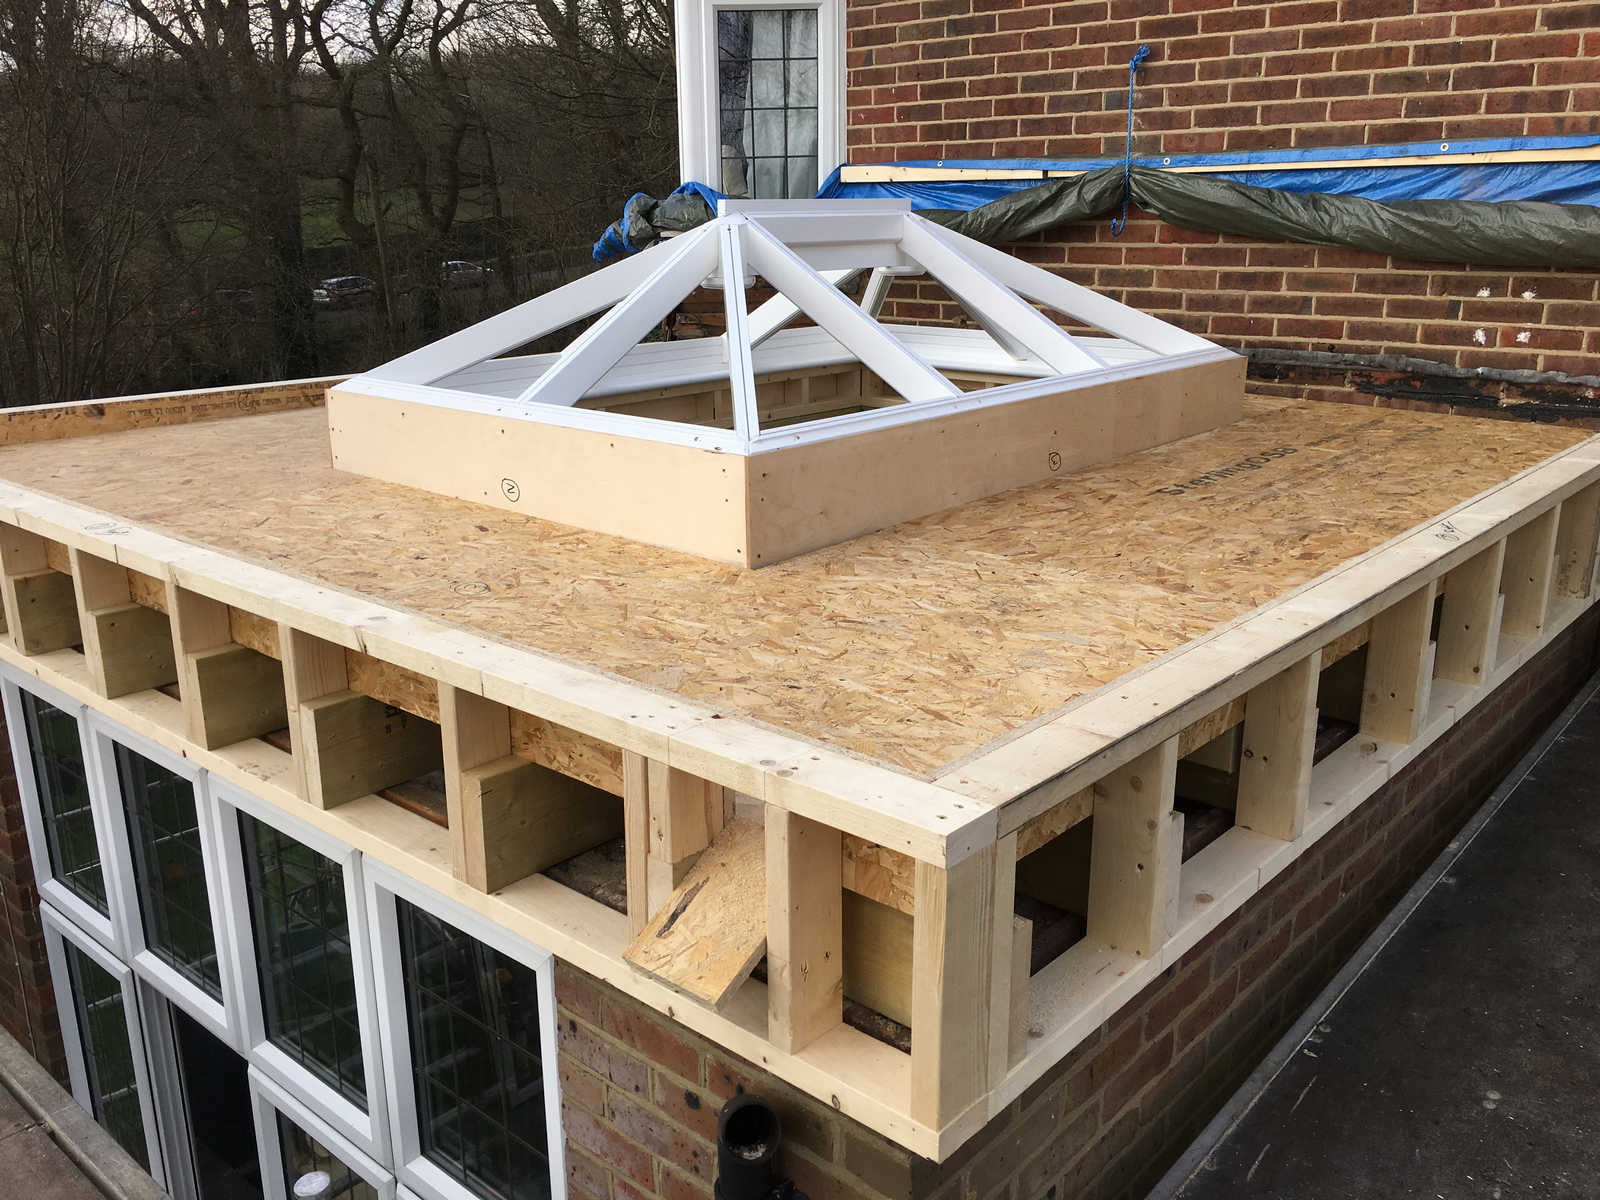 Timber flat roofs picture sc 1 st construction studies for House roof construction